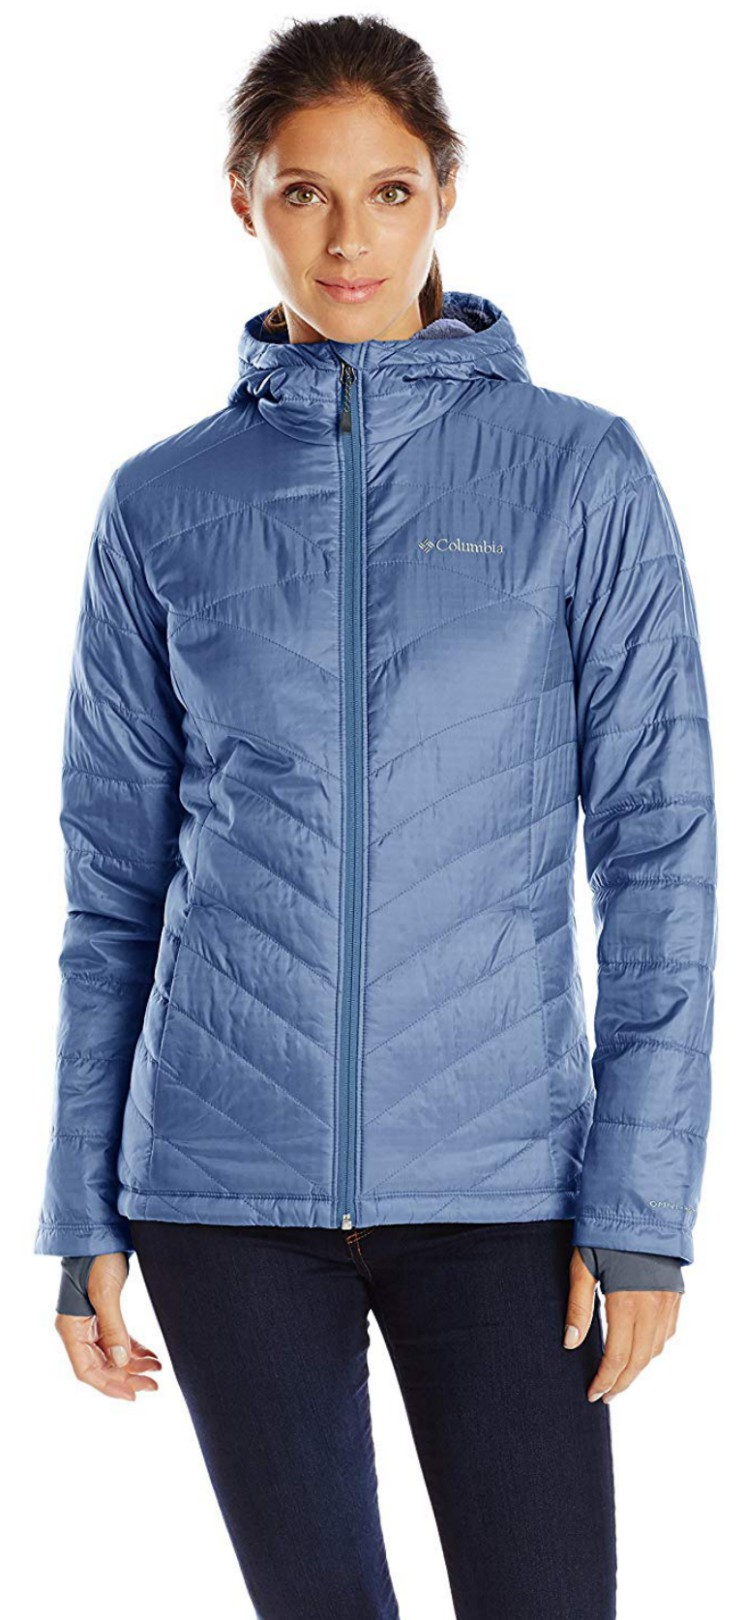 6c832d6d88c Columbia Mighty Lite Hooded Jacket - Visuall.co